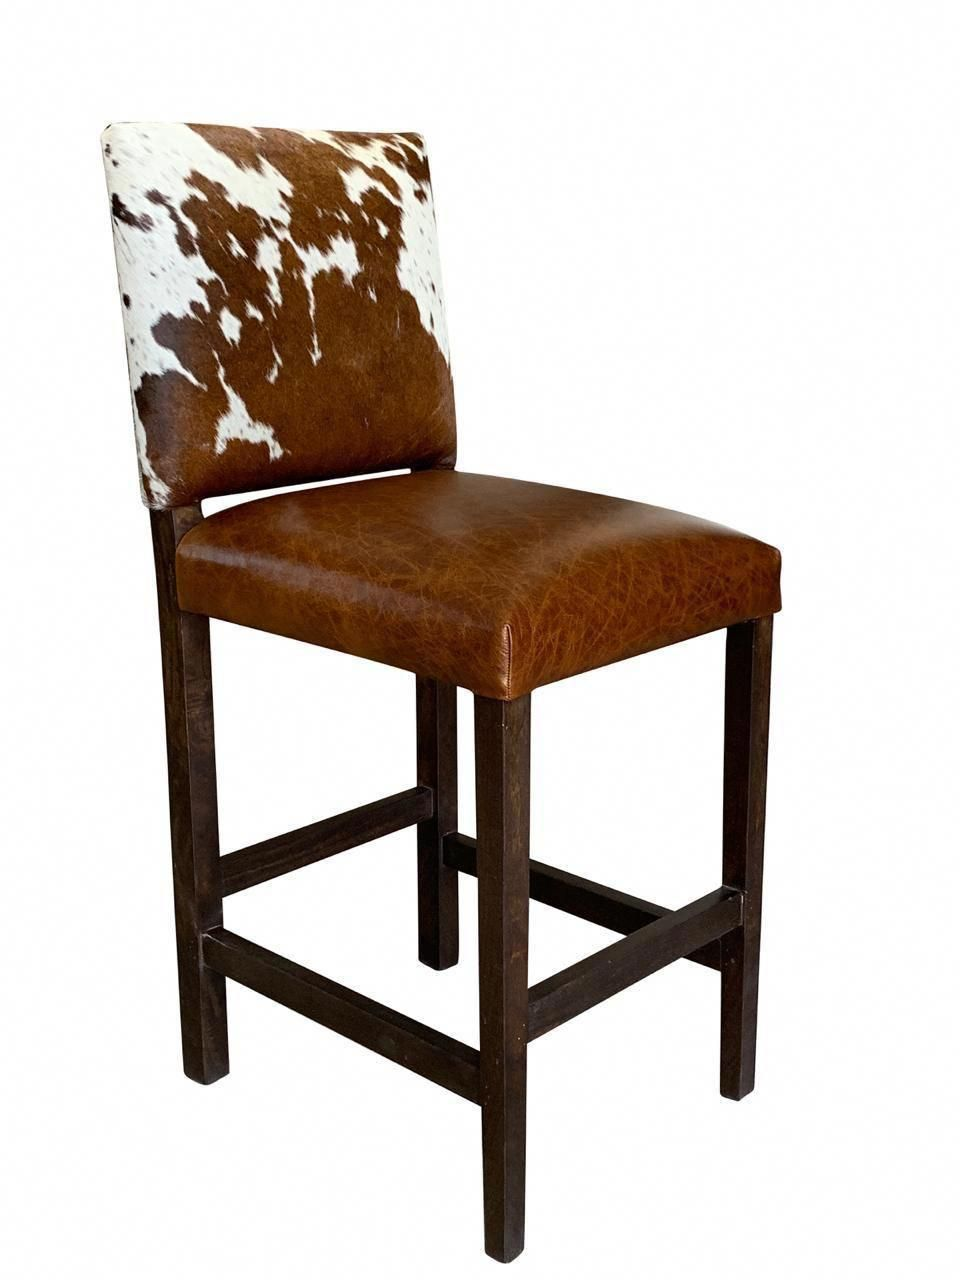 Accentchairsclearance id2646213960 in 2020 cowhide bar